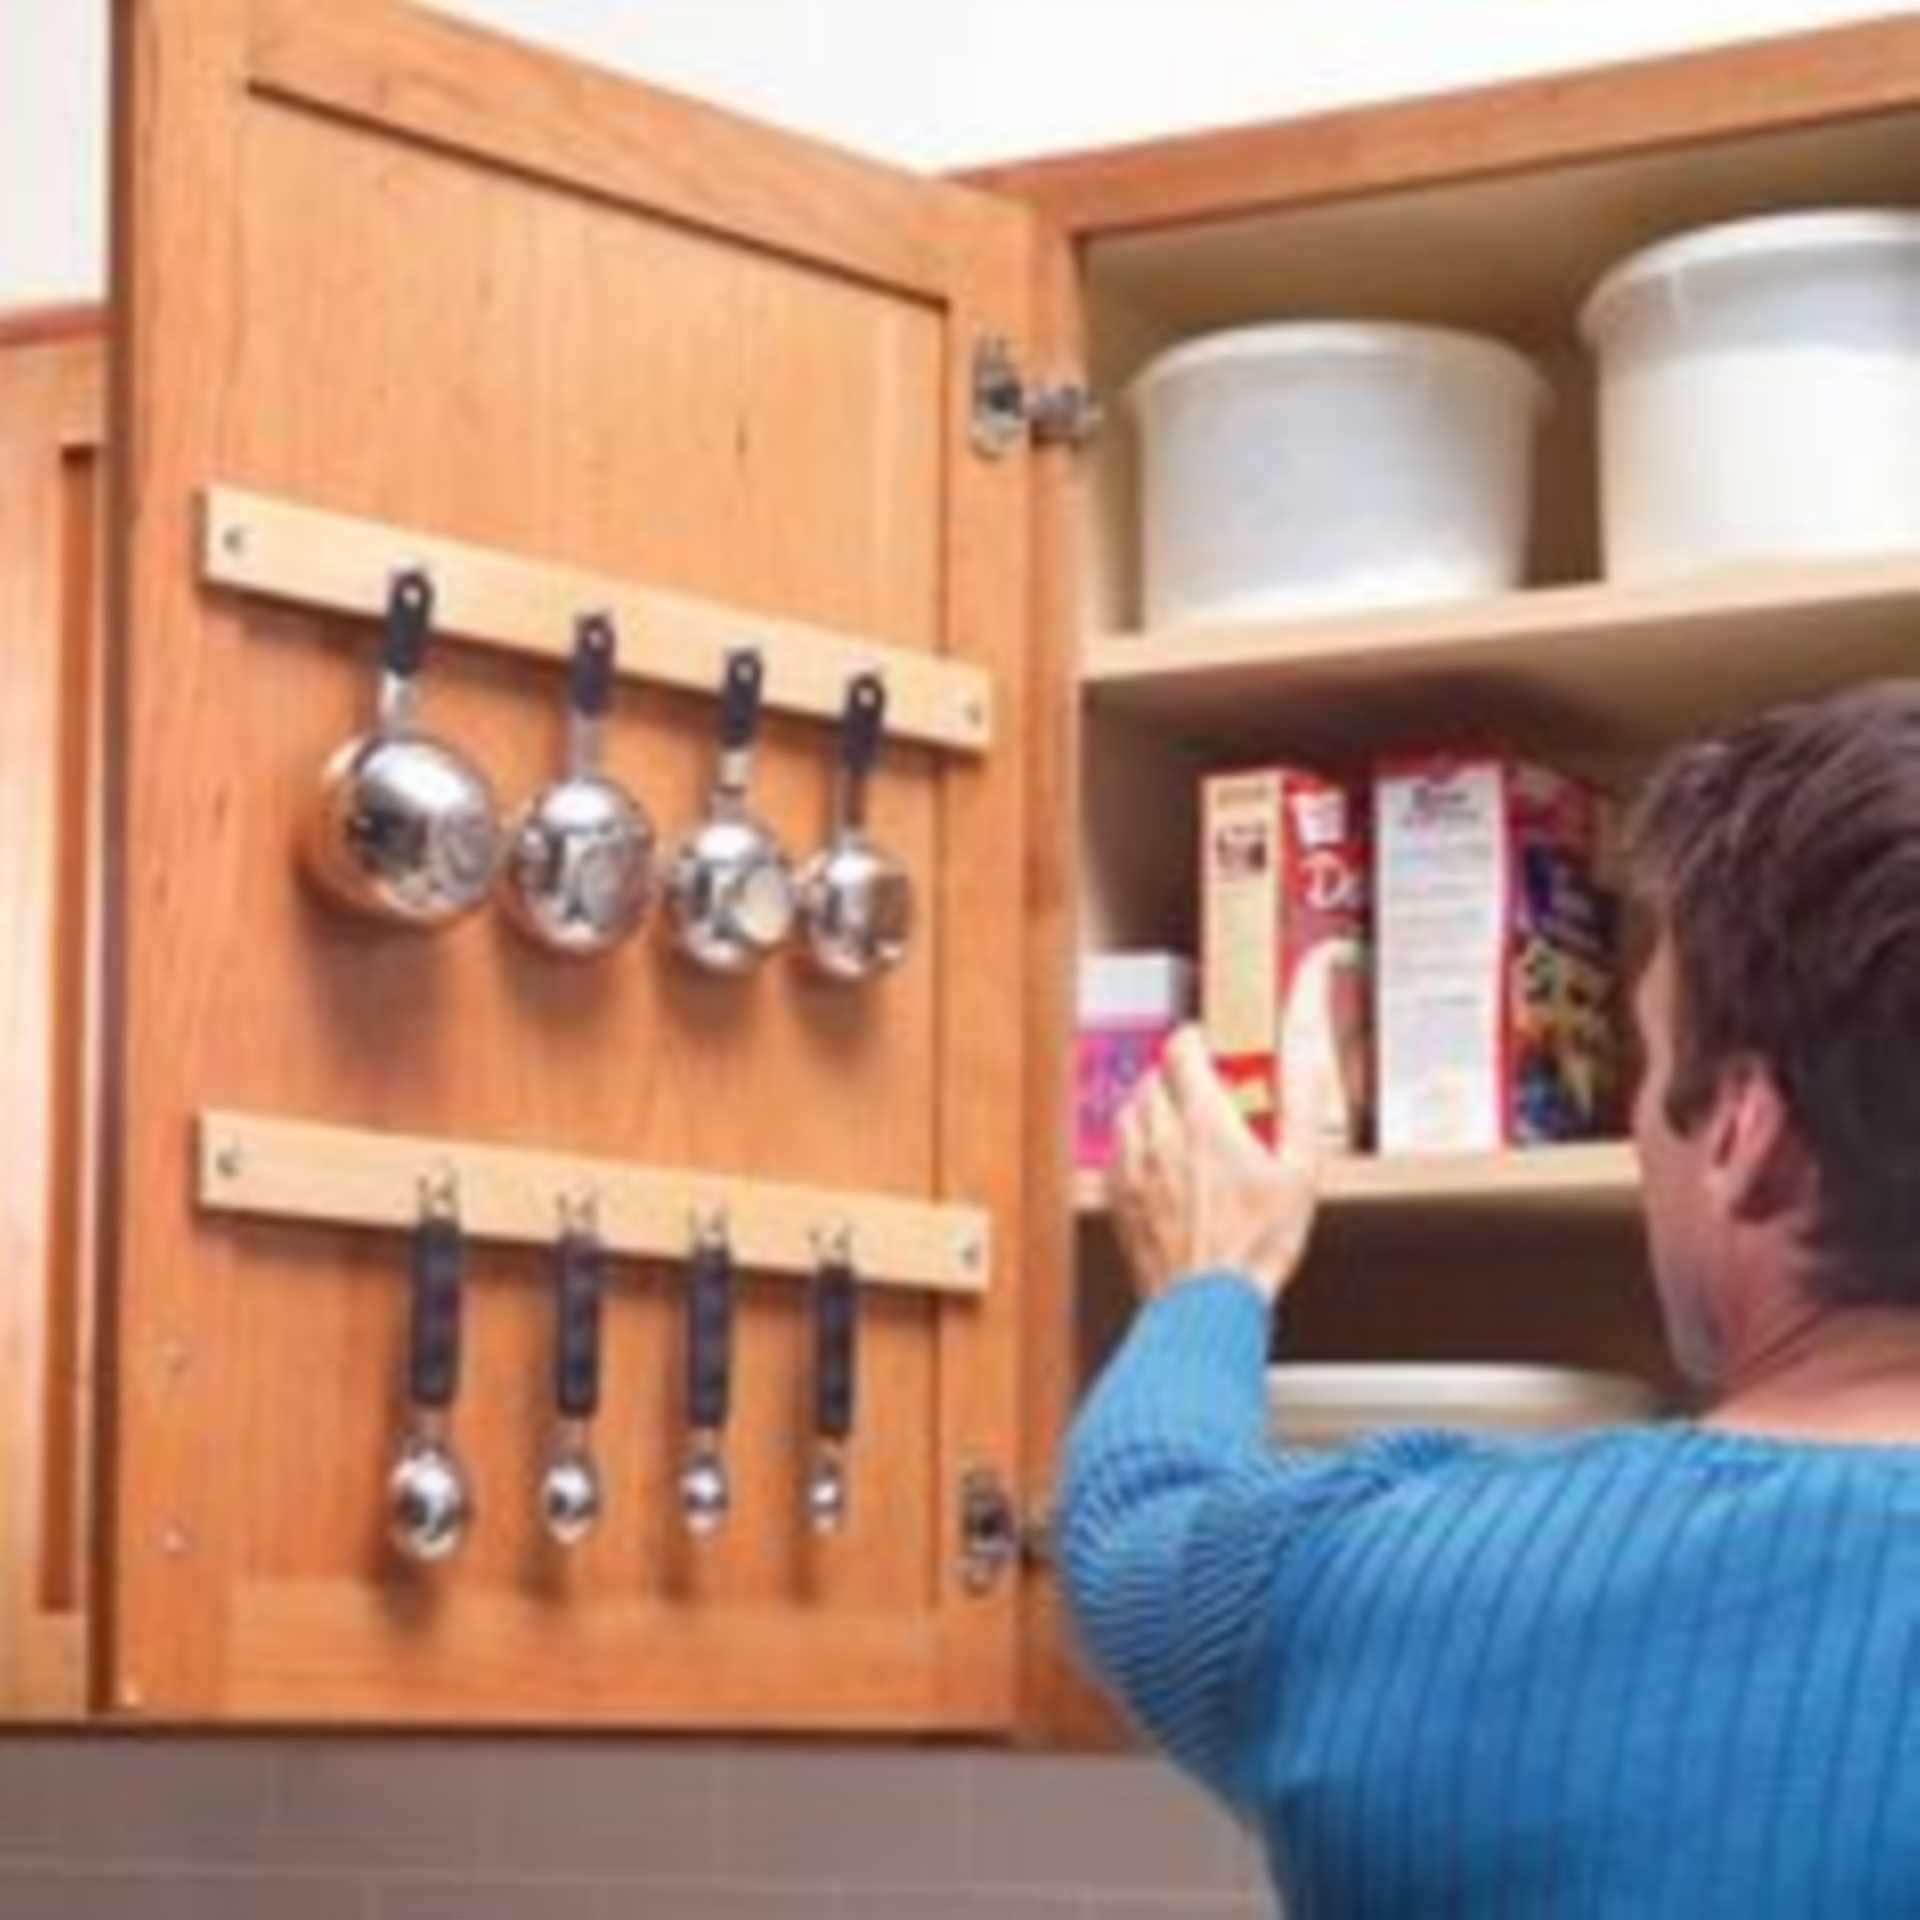 10 organisation hacks for your home